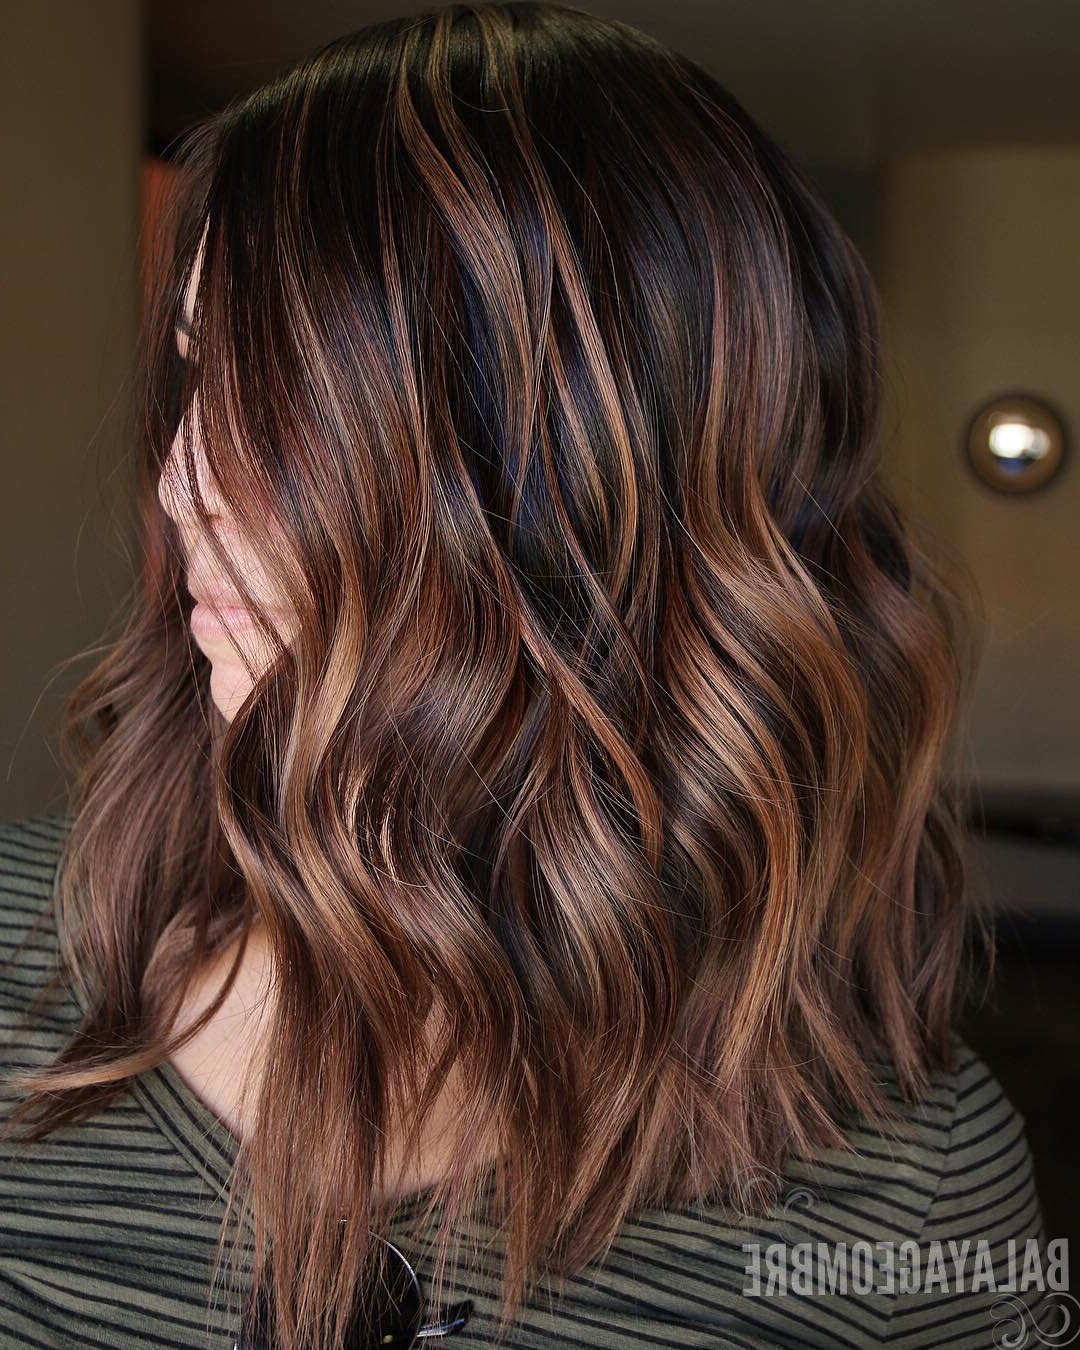 10 Trendy Brown Balayage Hairstyles For Medium Length Hair 2019 In Favorite Medium Hairstyles With Red Highlights (View 3 of 20)